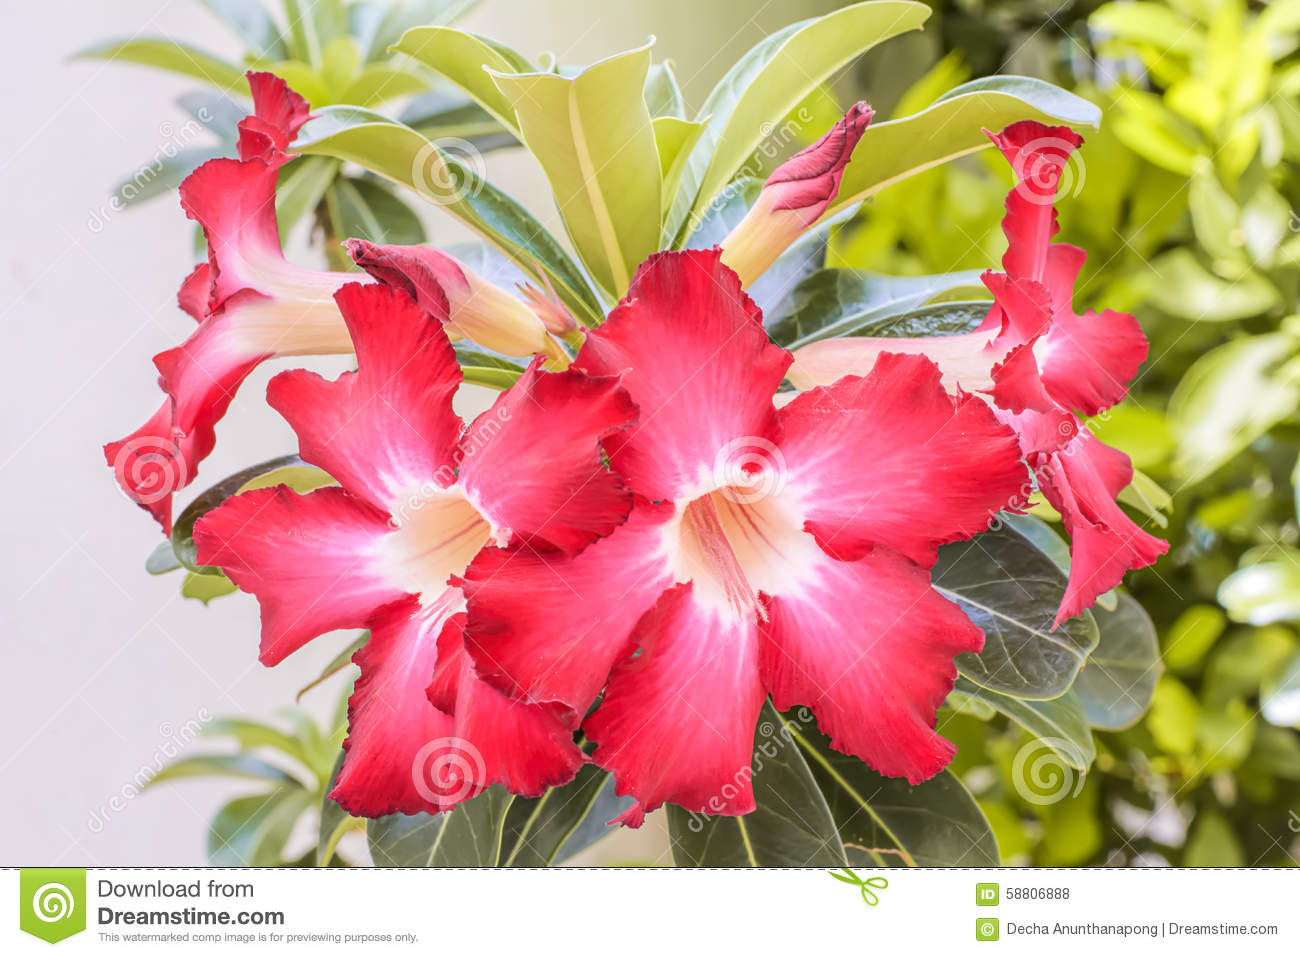 Desert Rose stock photo. Image of beautiful, bignonia - 58806888